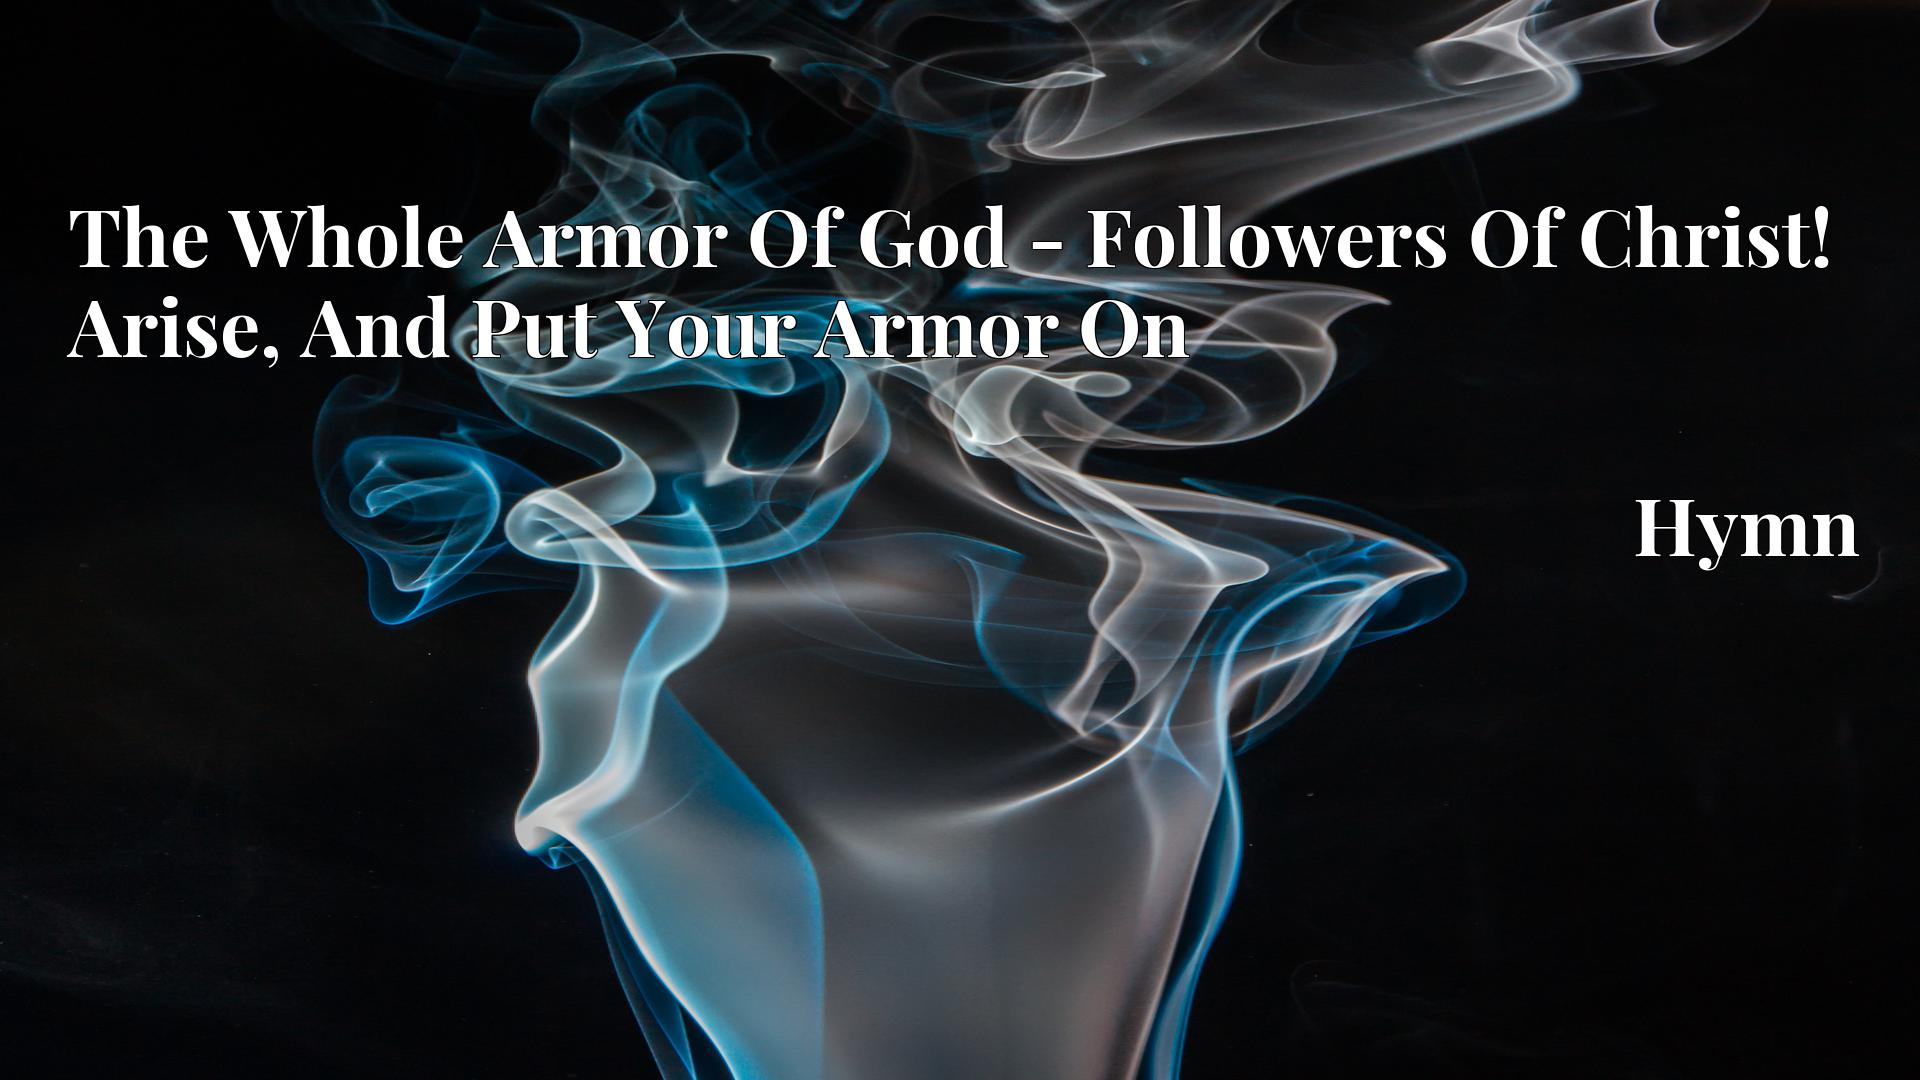 The Whole Armor Of God - Followers Of Christ! Arise, And Put Your Armor On - Hymn